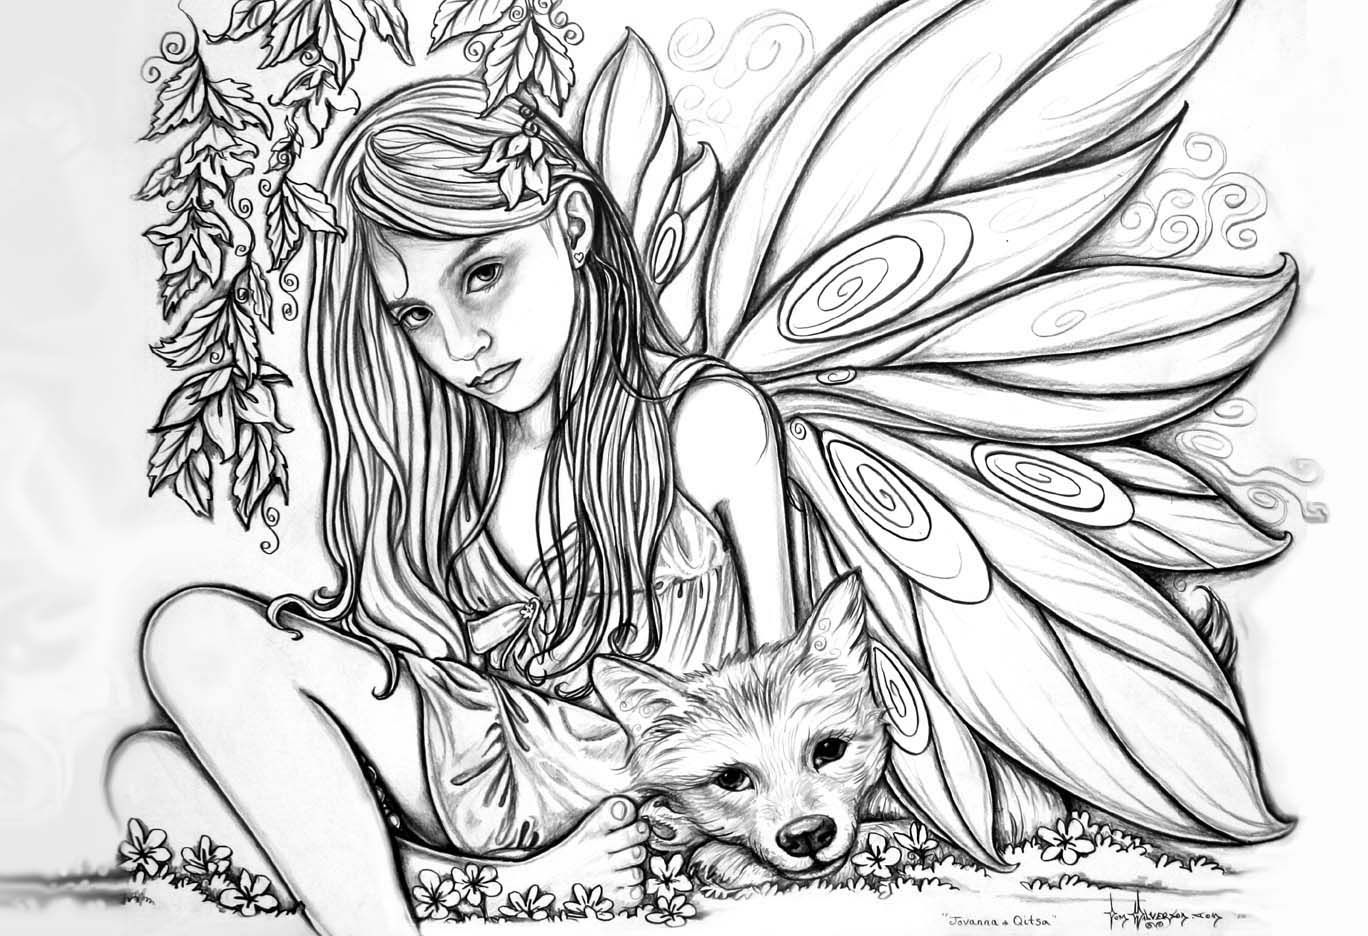 coloring pages for teenagers difficult fairy coloring pages for teenagers difficult fairy | Colorings  coloring pages for teenagers difficult fairy